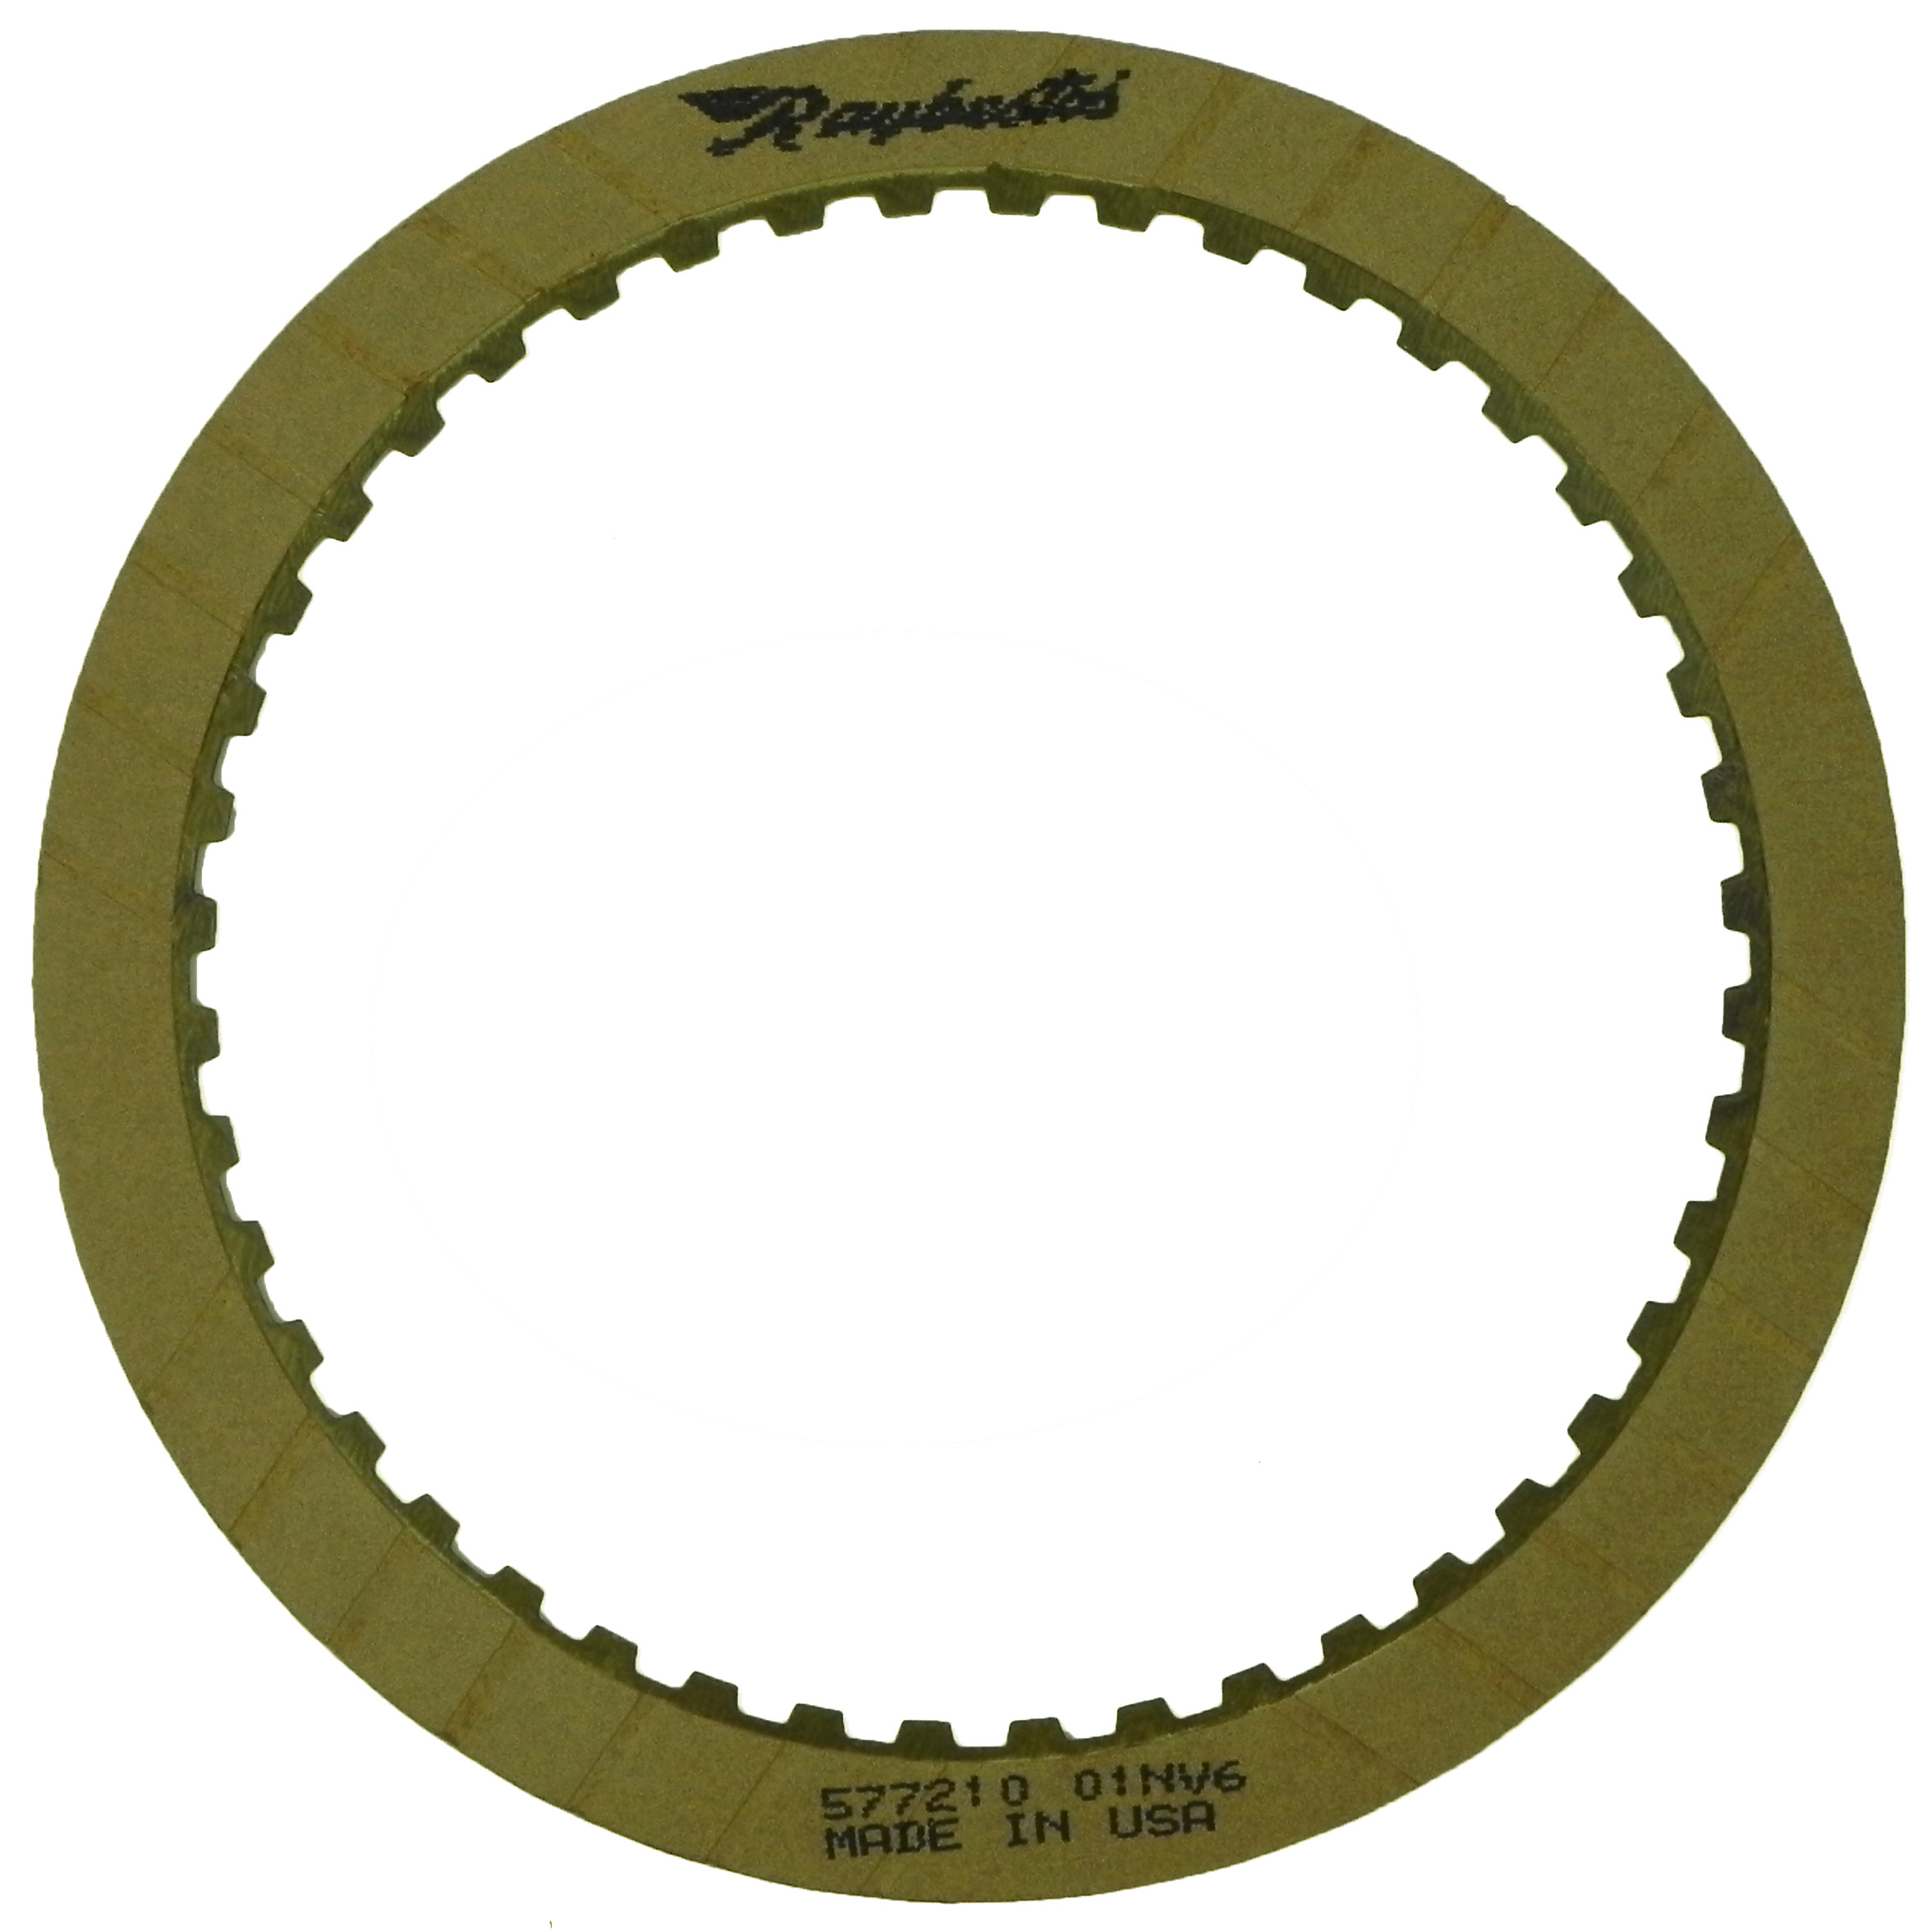 R577210 | 1976-1990 Friction Clutch Plate High Static Low, Reverse, GEN 2 Race Product, High Static